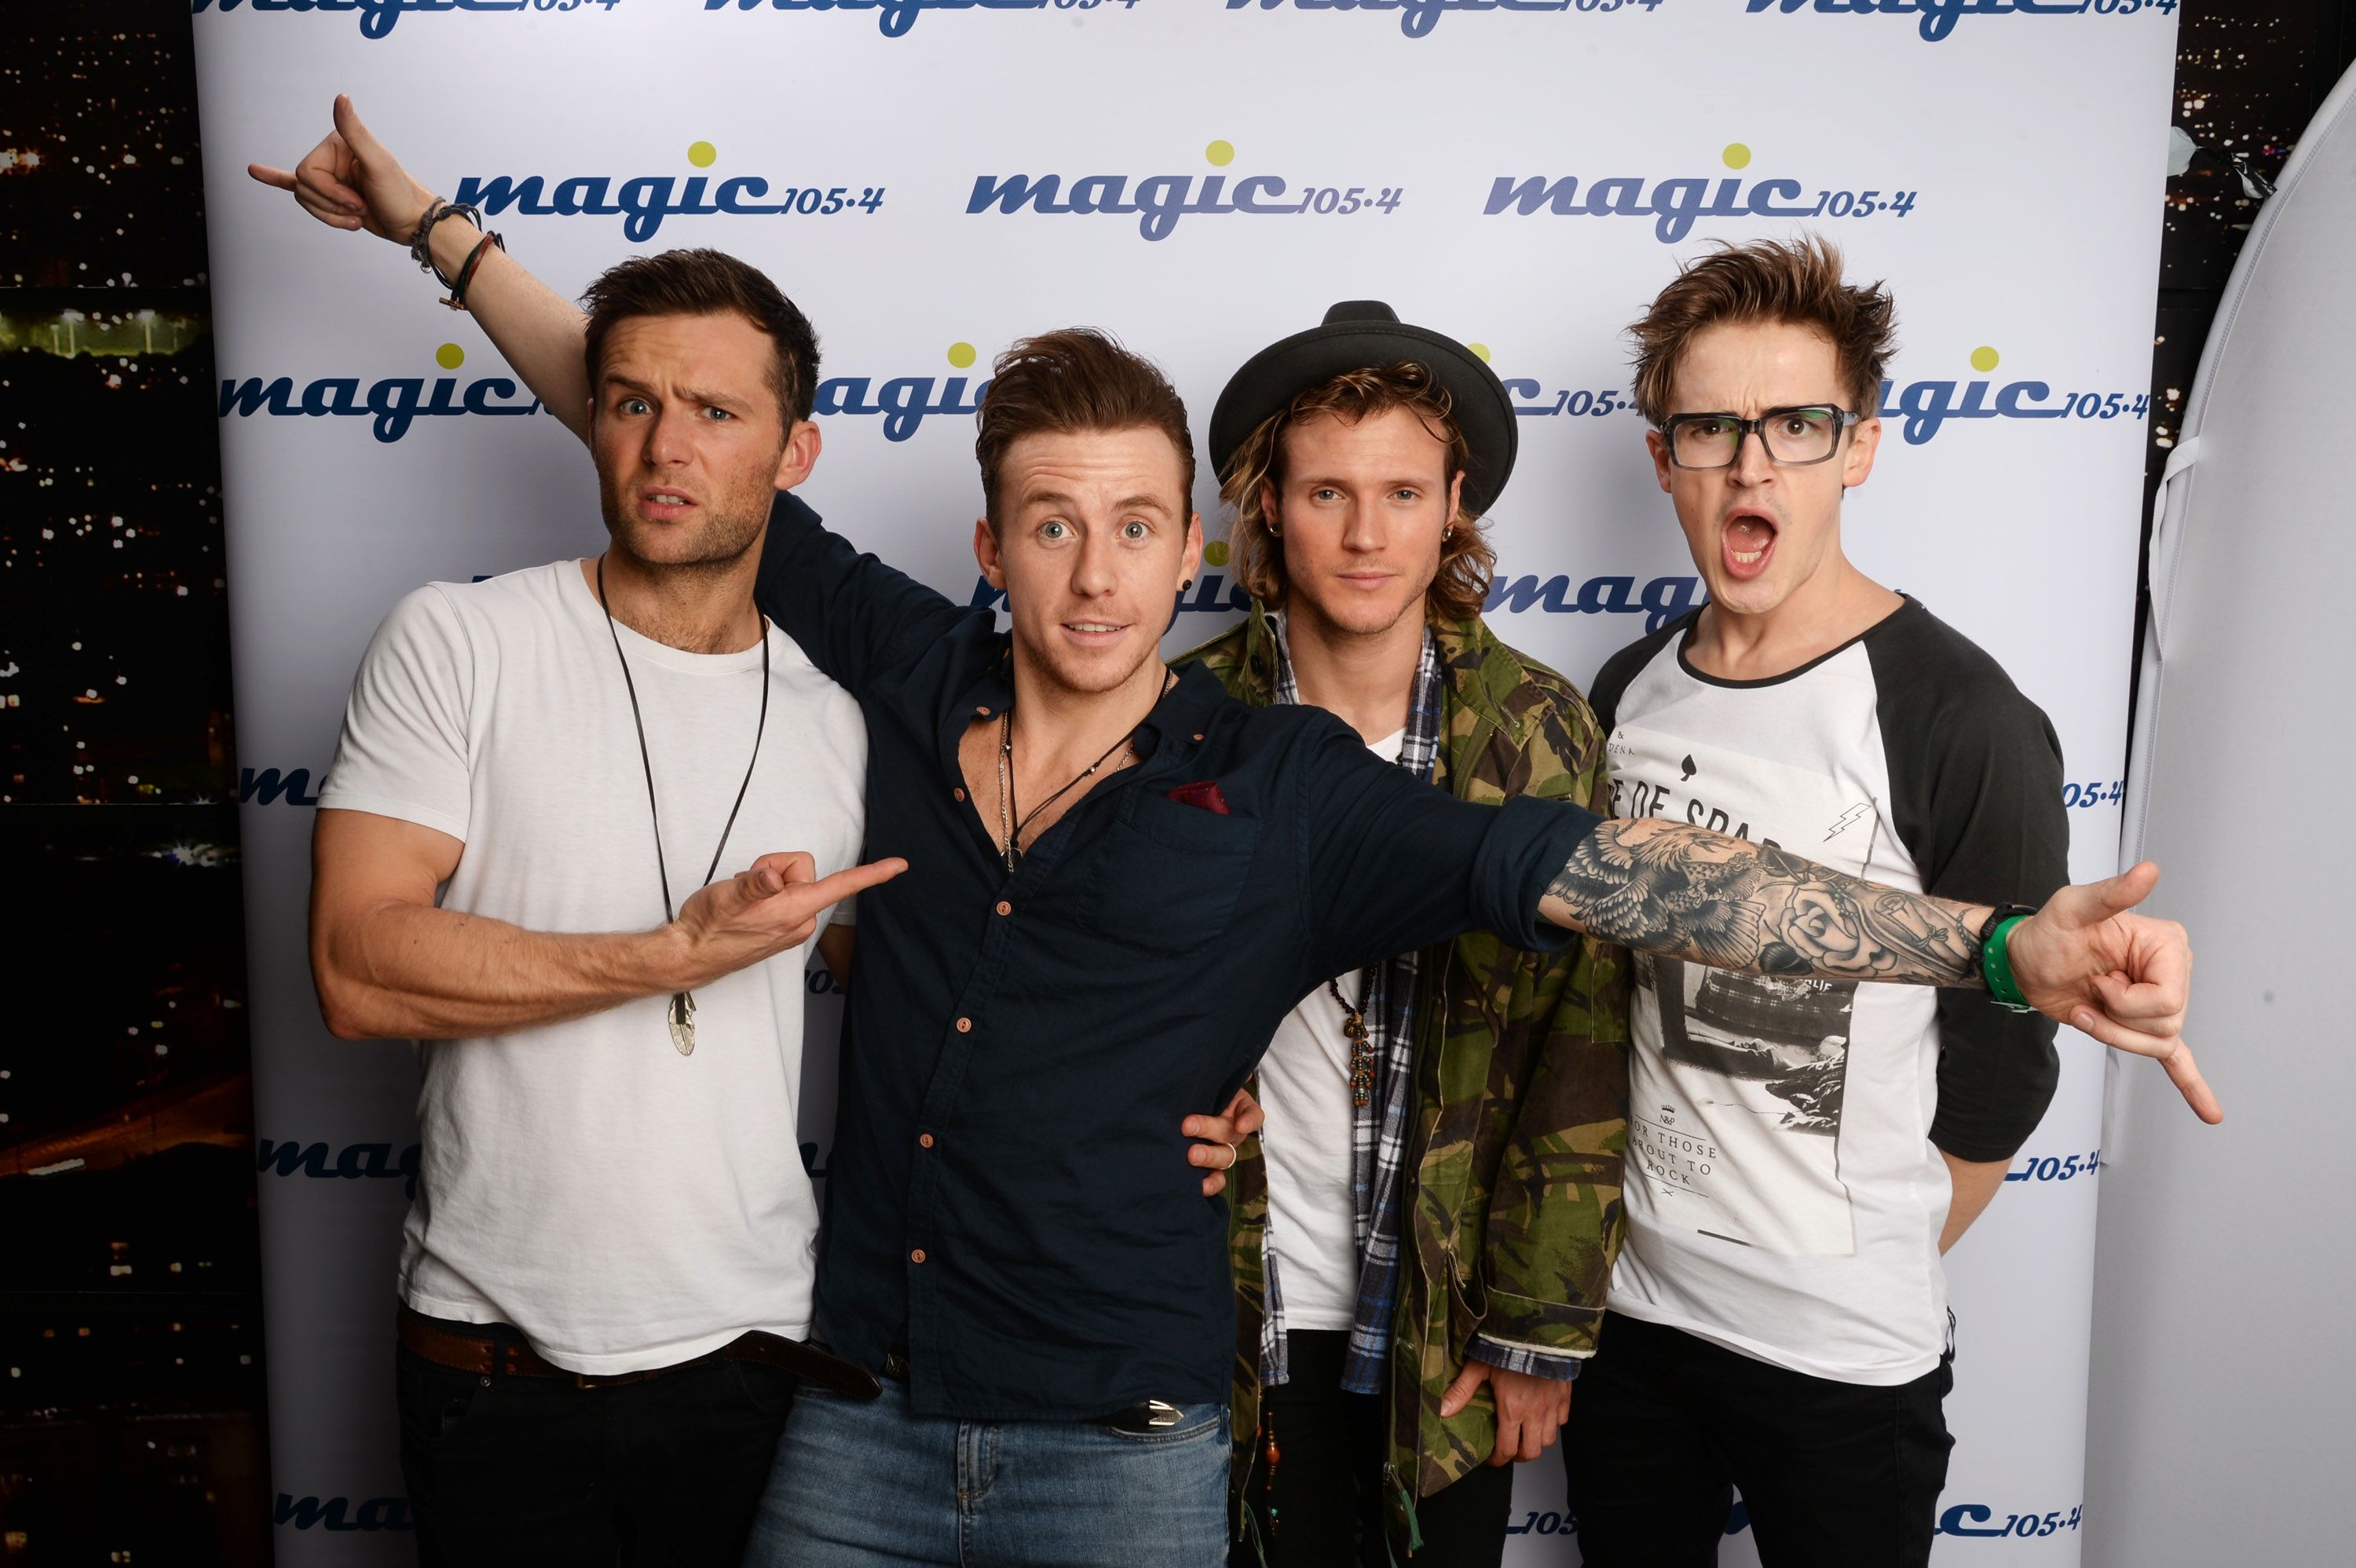 McFly fans furious as comeback show tickets sell out in seconds but are listed on resale sites for huge profit